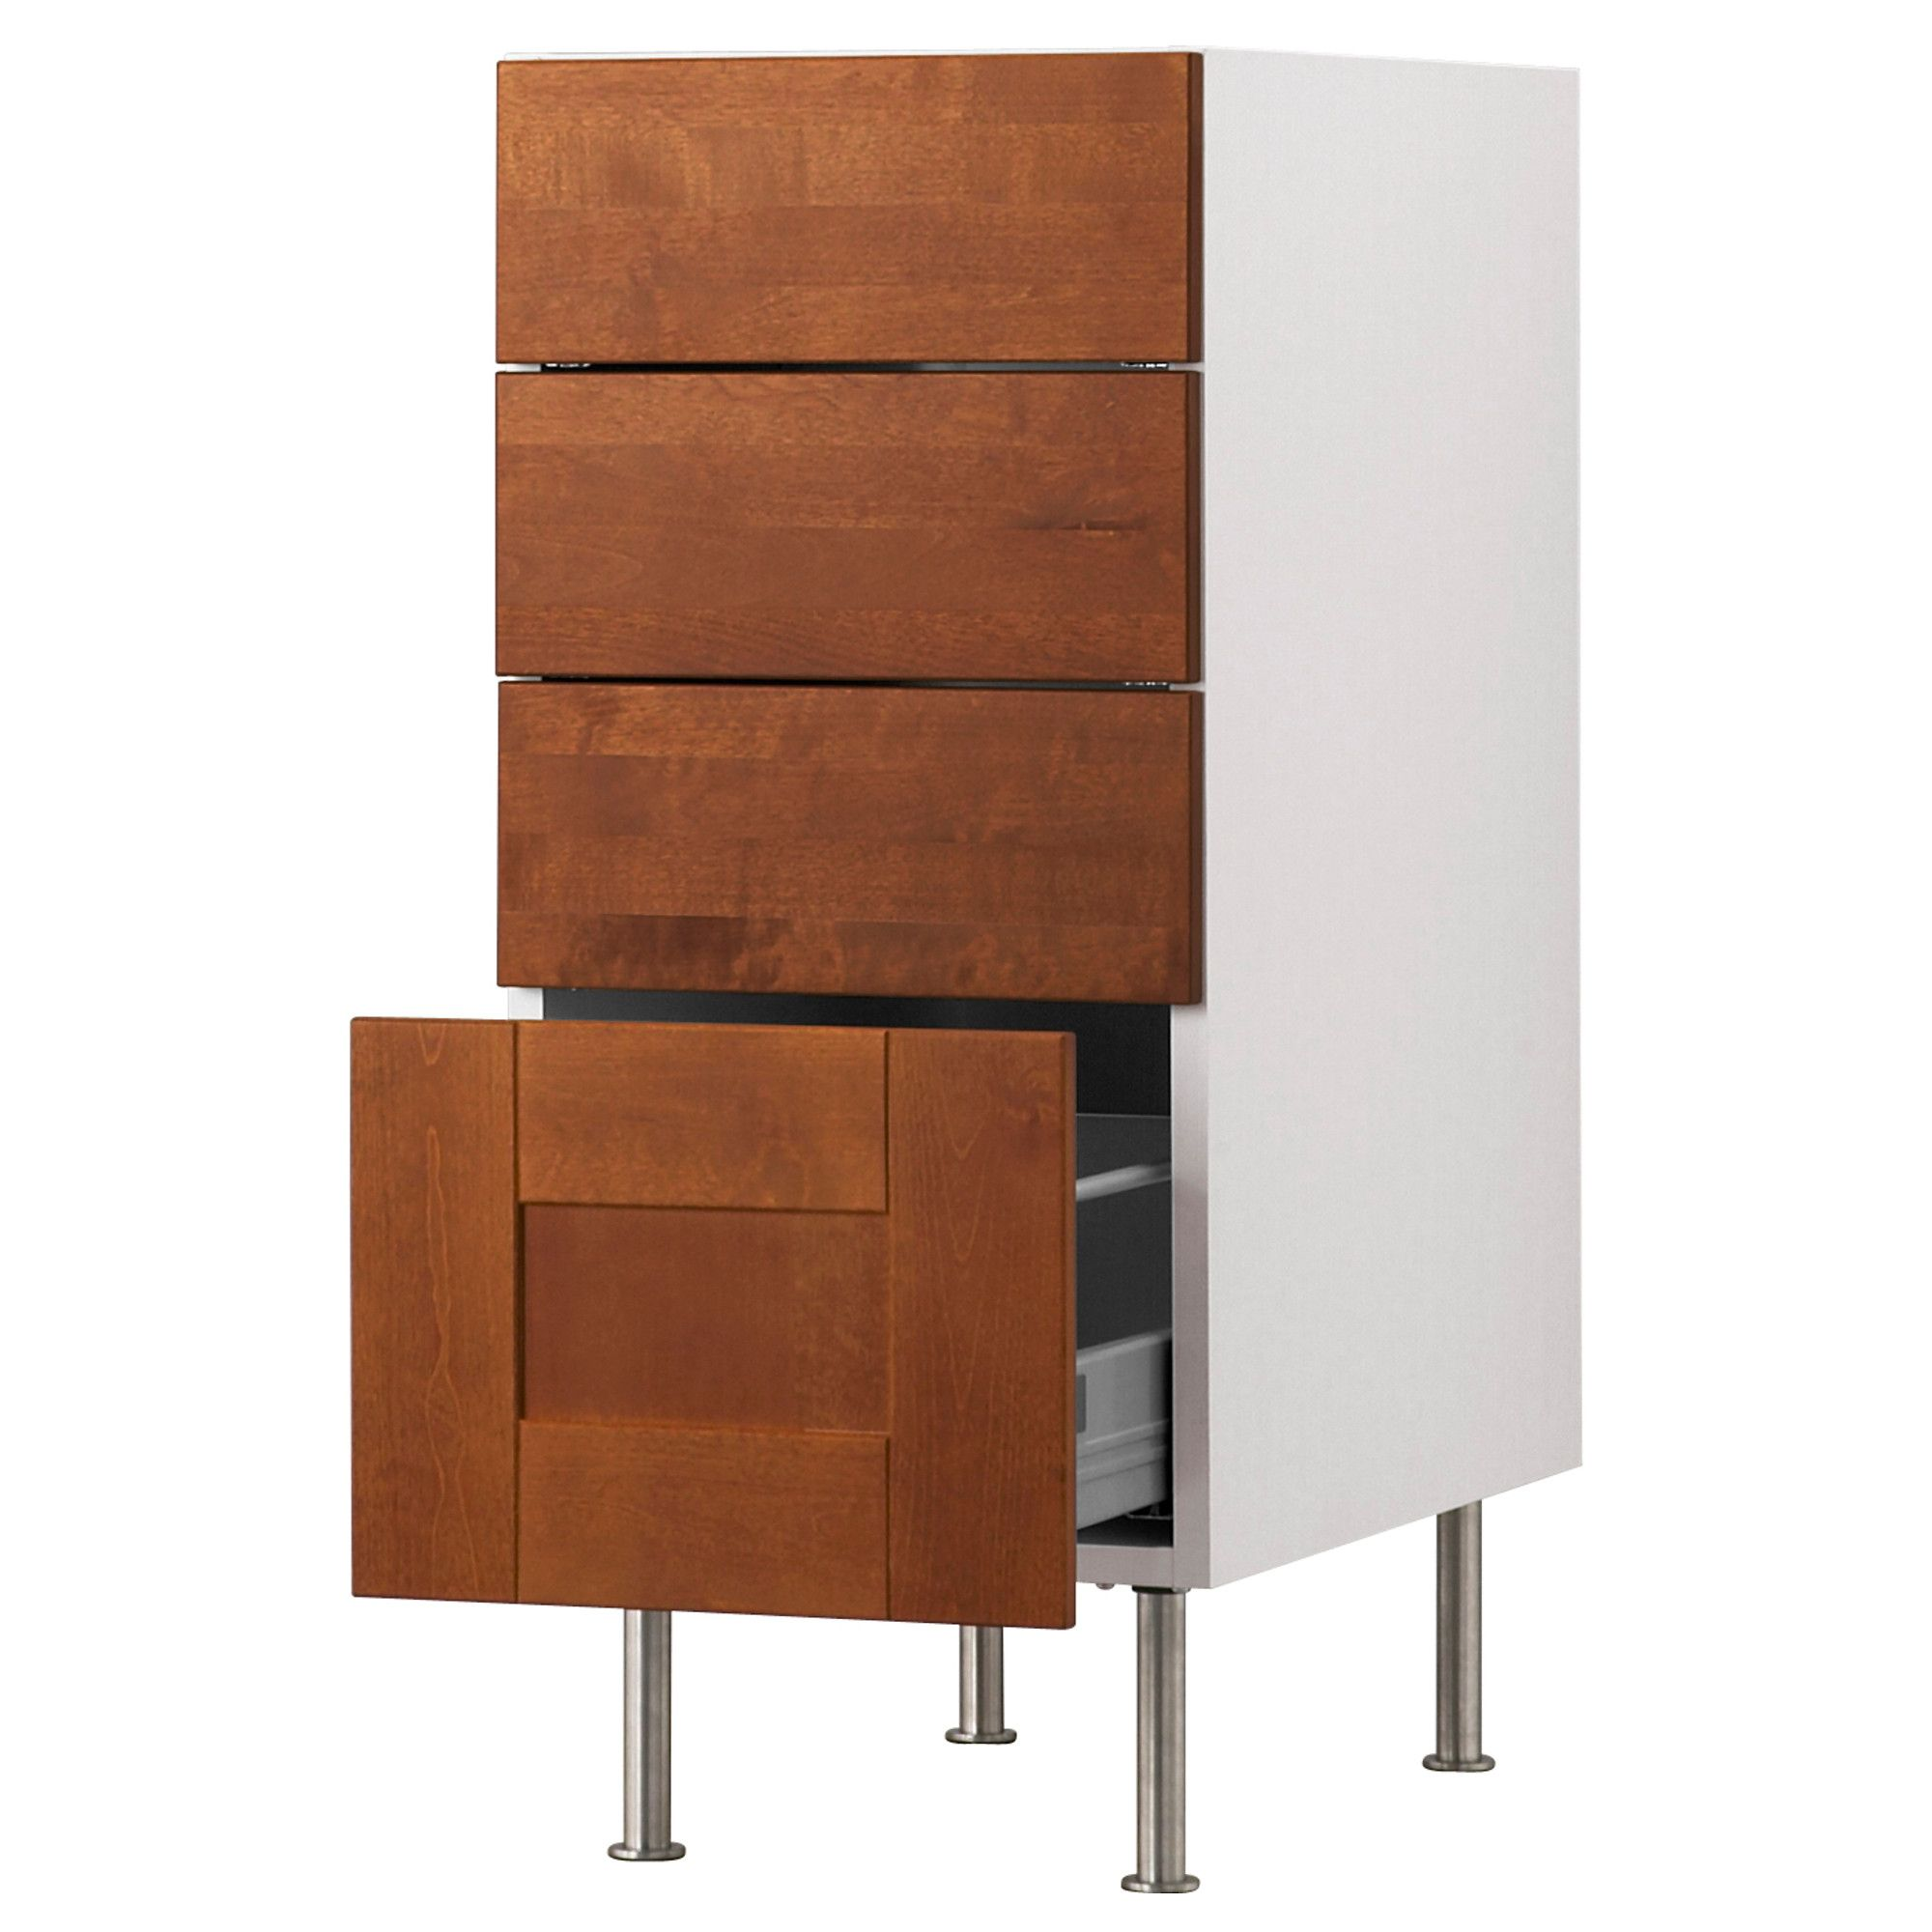 cabinets of depot x full in wall inch kitchen sizes home large chic sink base drawers menards lowes cabinet uses assembled with pre stock ikea reviews deep shallow size unfinished